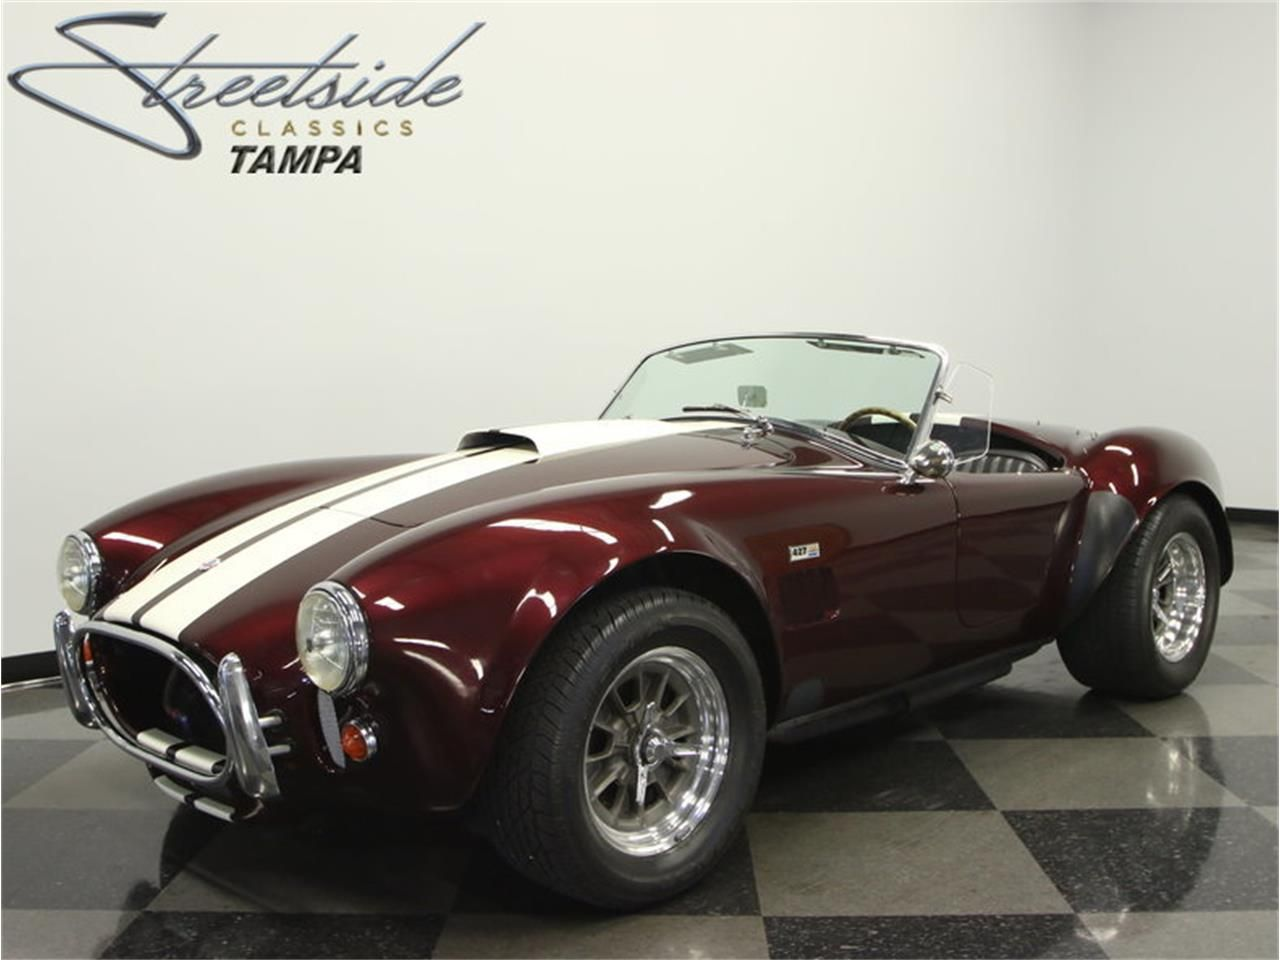 Jumbo Photo Of 65 Cobra 427 Era Kz8p 1965 Shelby Cobra